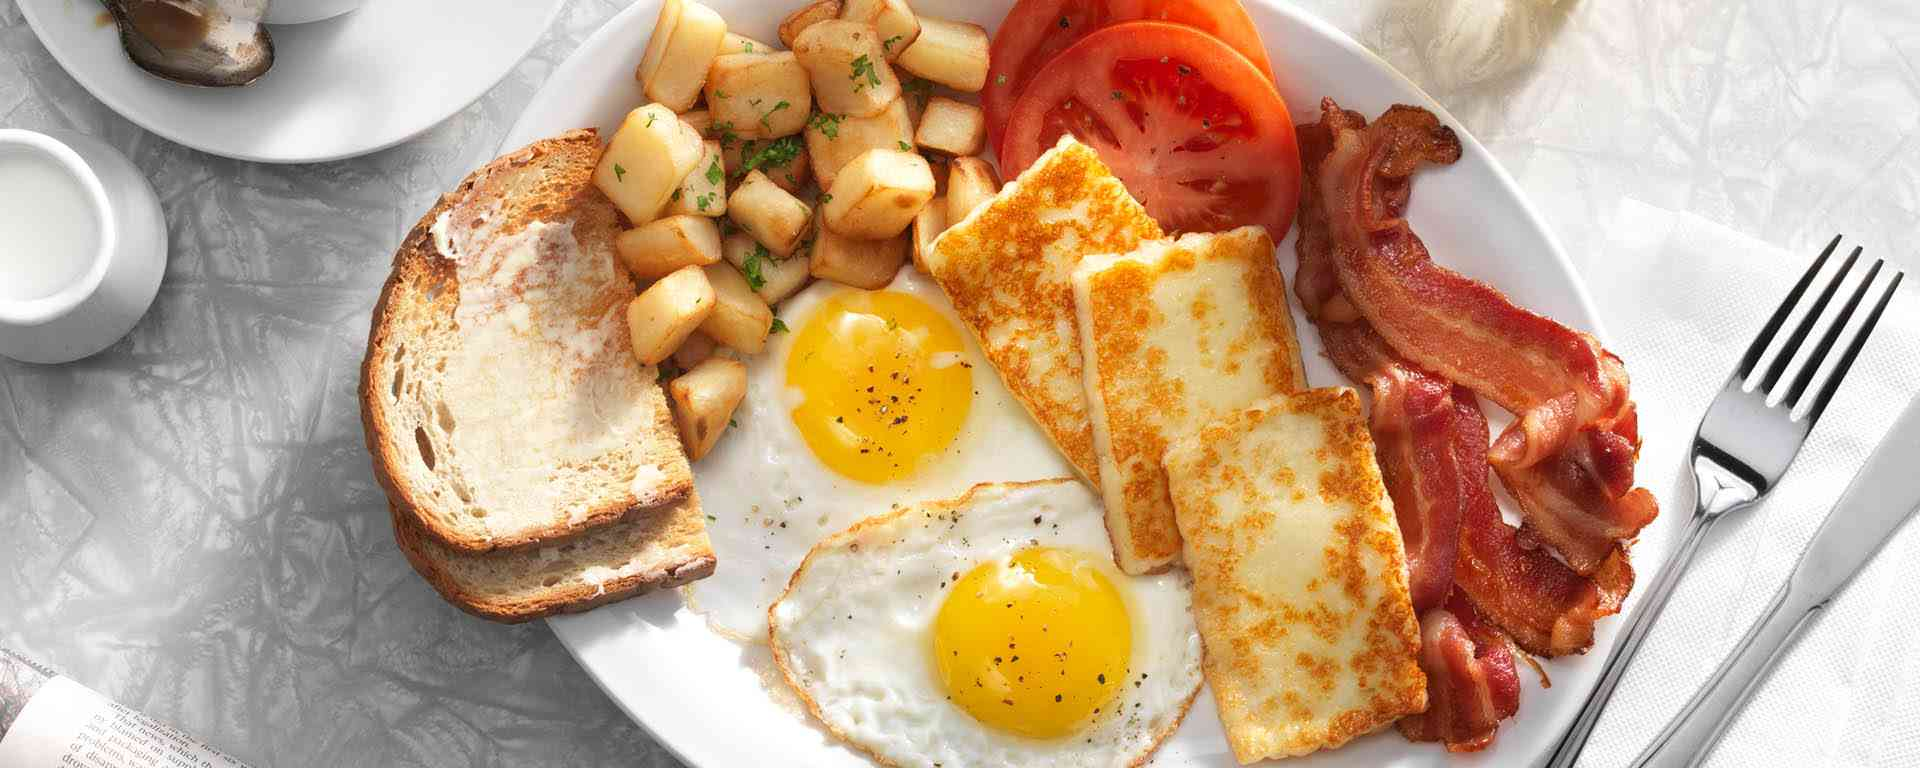 Photo for - Classic Diner Breakfast with Halloumi